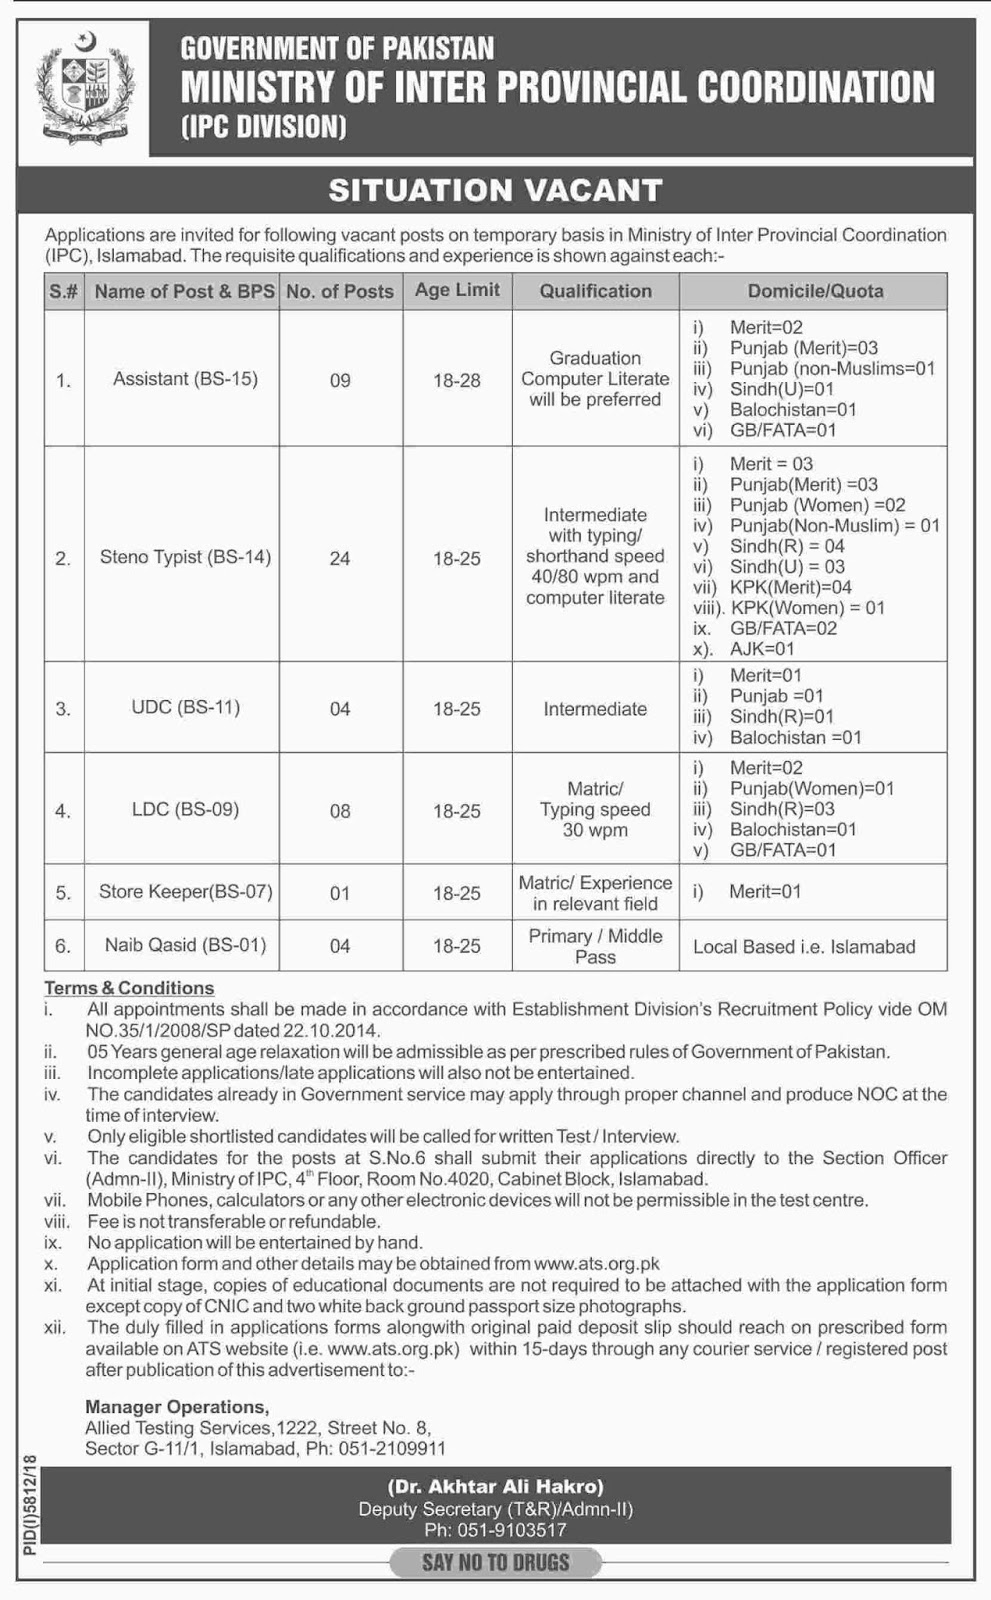 Ministry of Inter Provincial Coordination (IPC DIVISION) Jobs May 2019